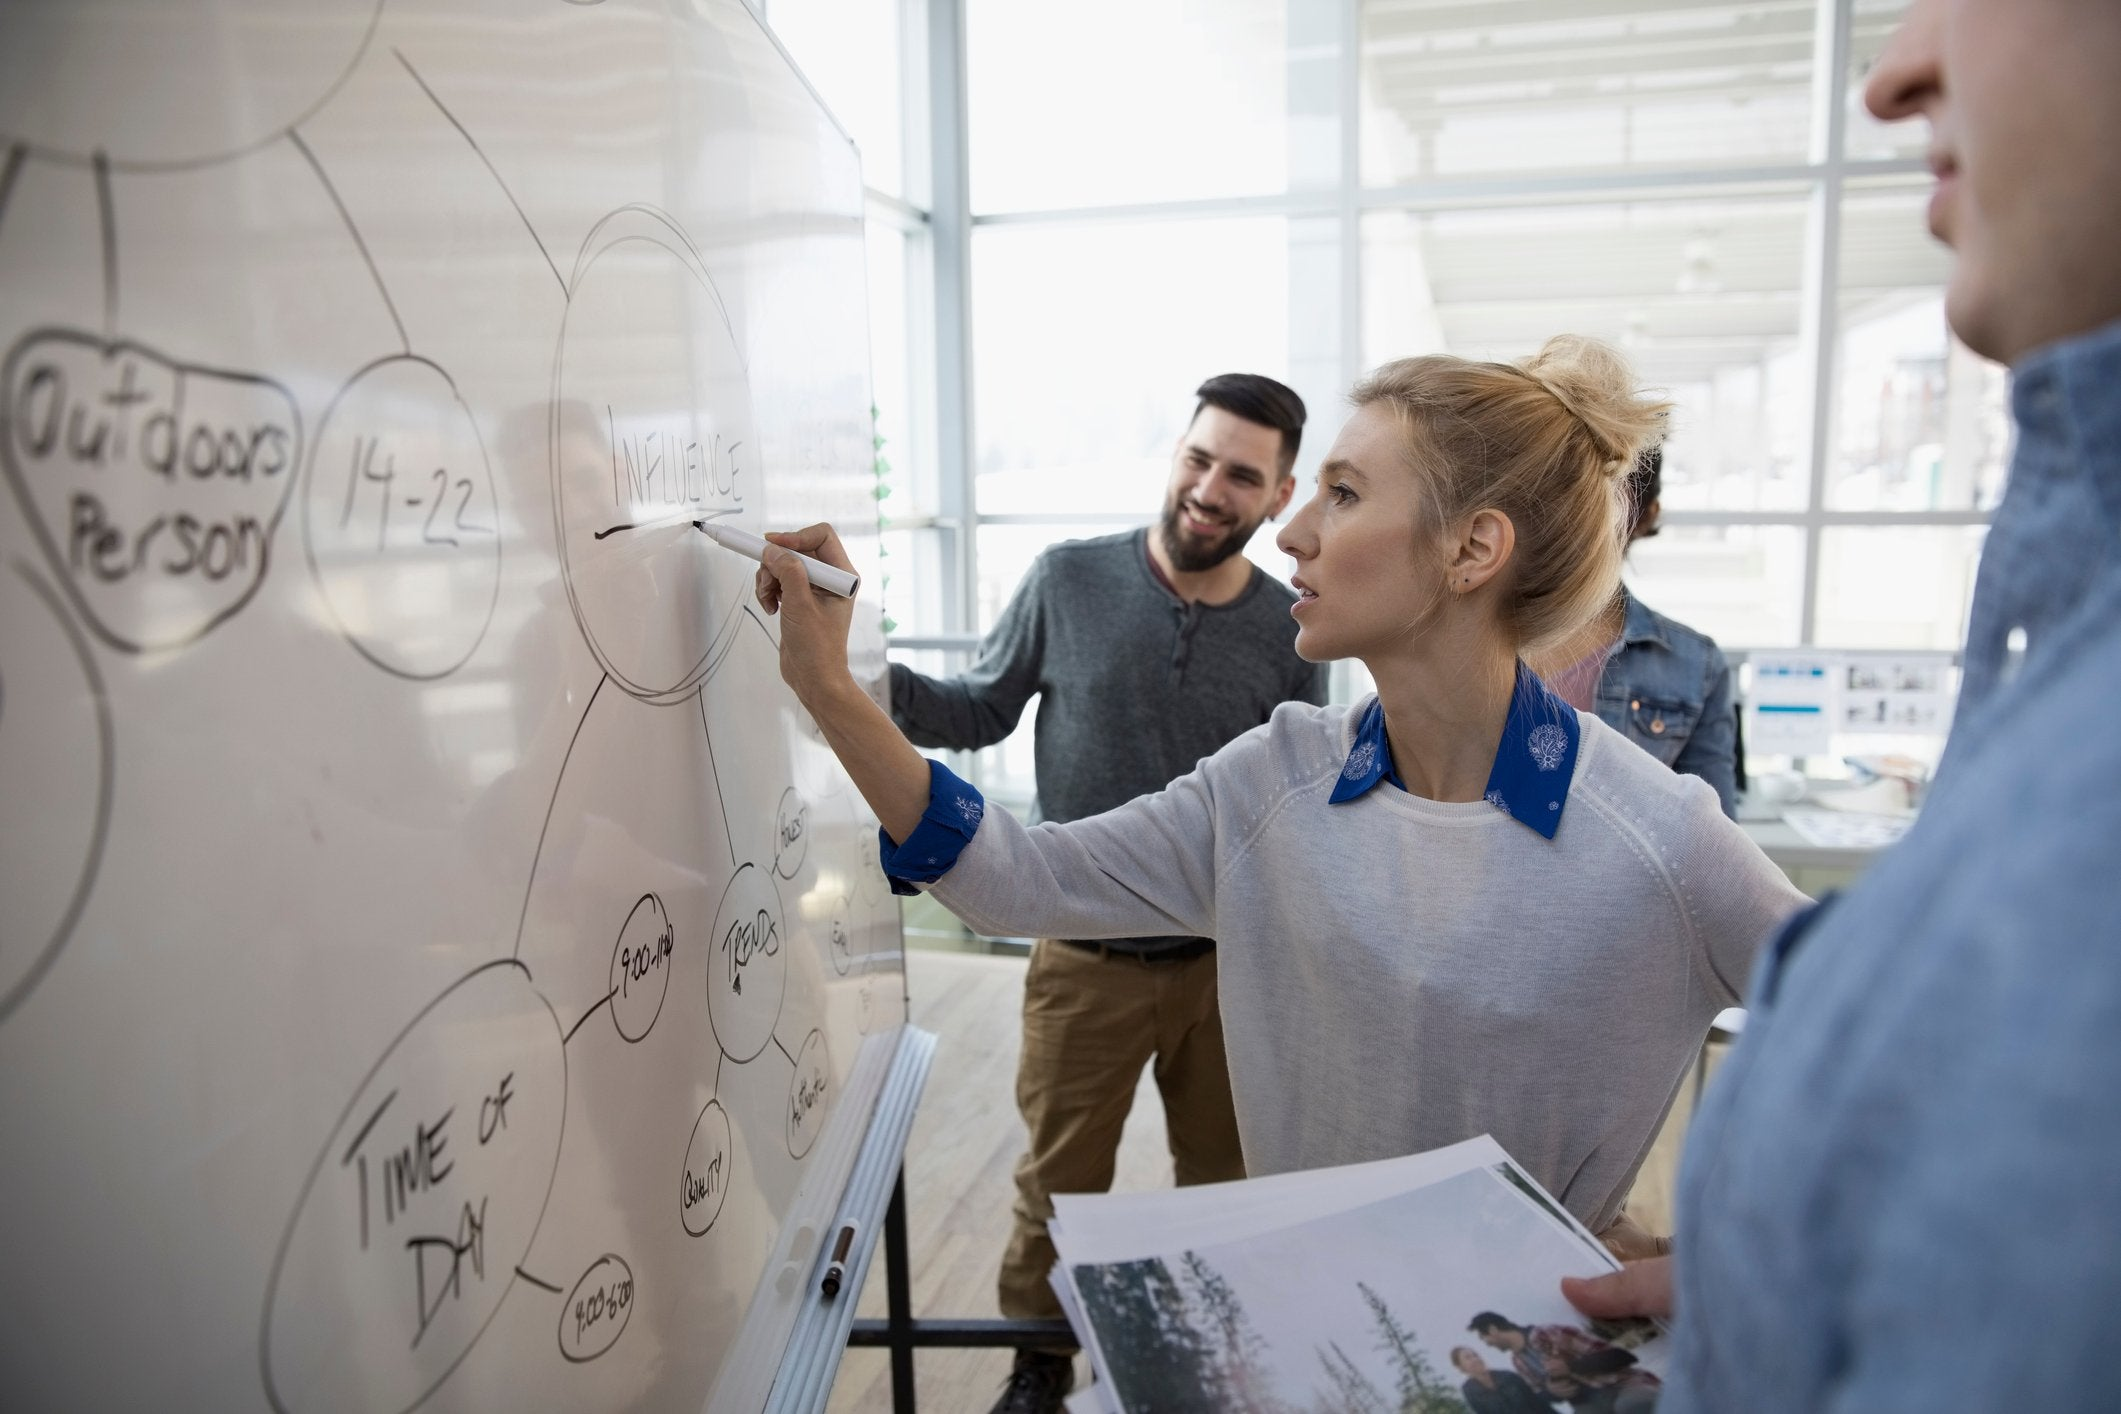 Entrepreneur Events: How to Create a Compact Marketing Plan - May 28, 2019